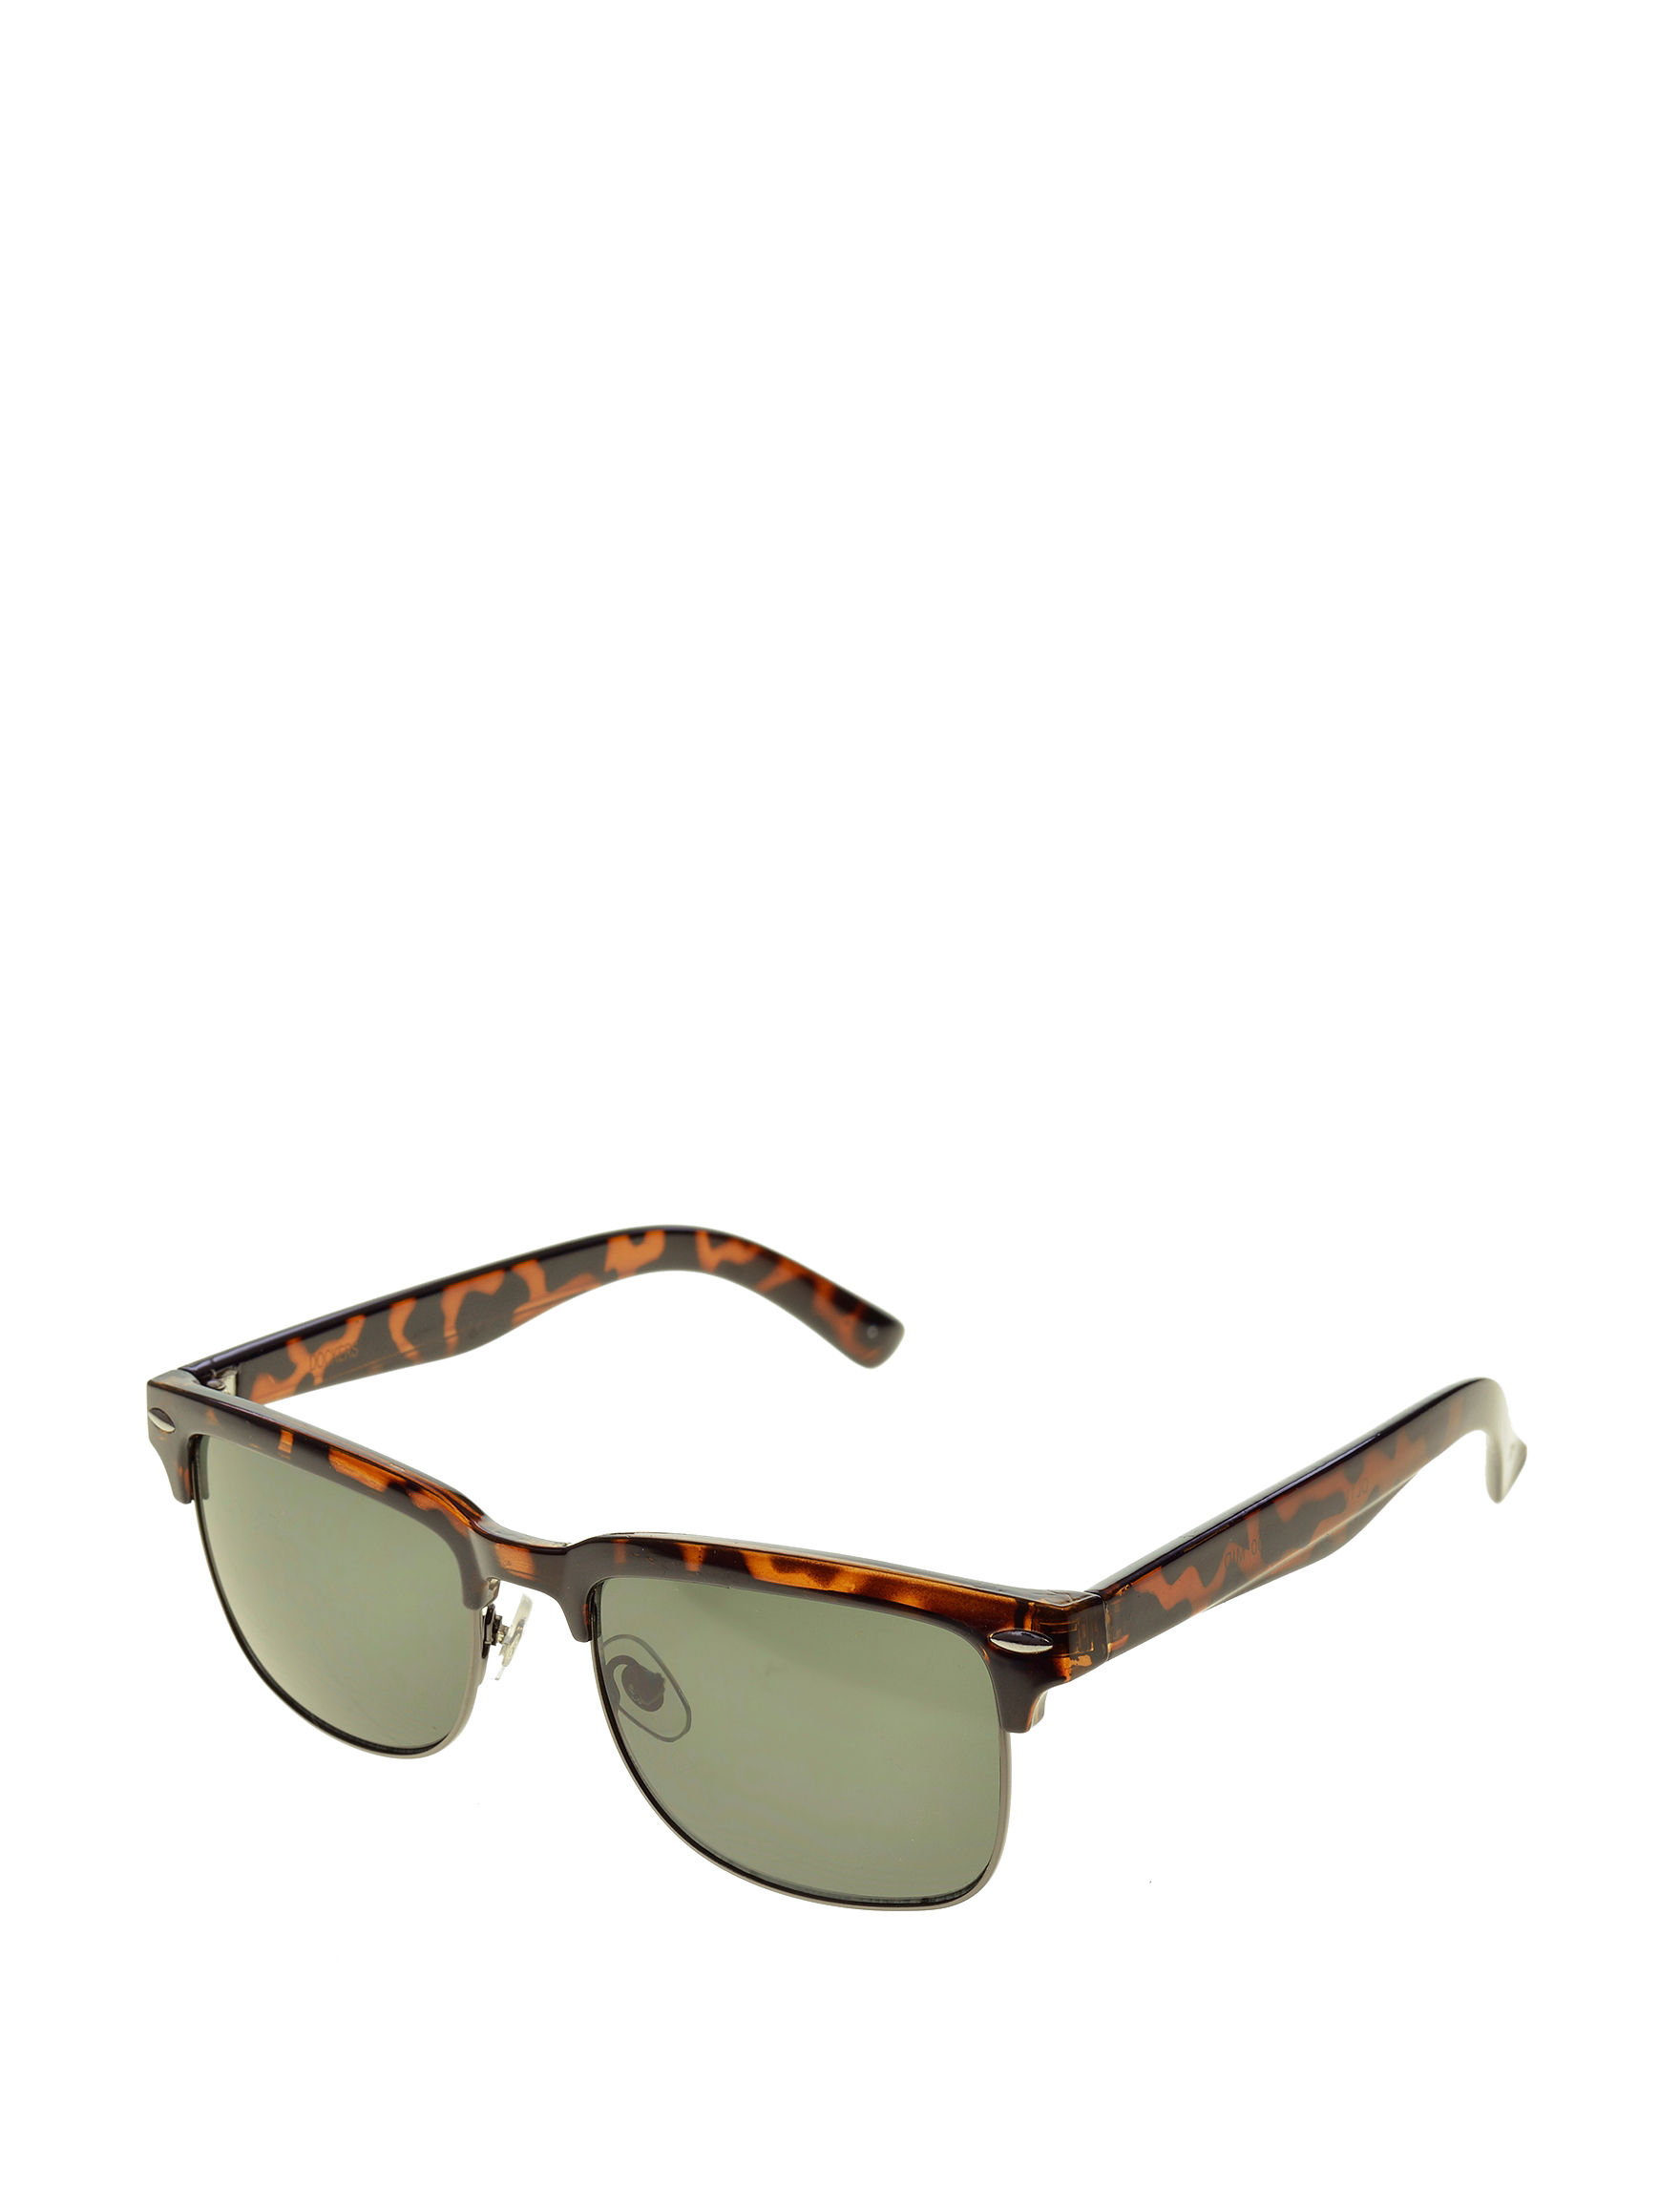 d84e2176c7 Images Wiki Ray Ban Clubmaster Clubmaster Wayfarer Sunglasses